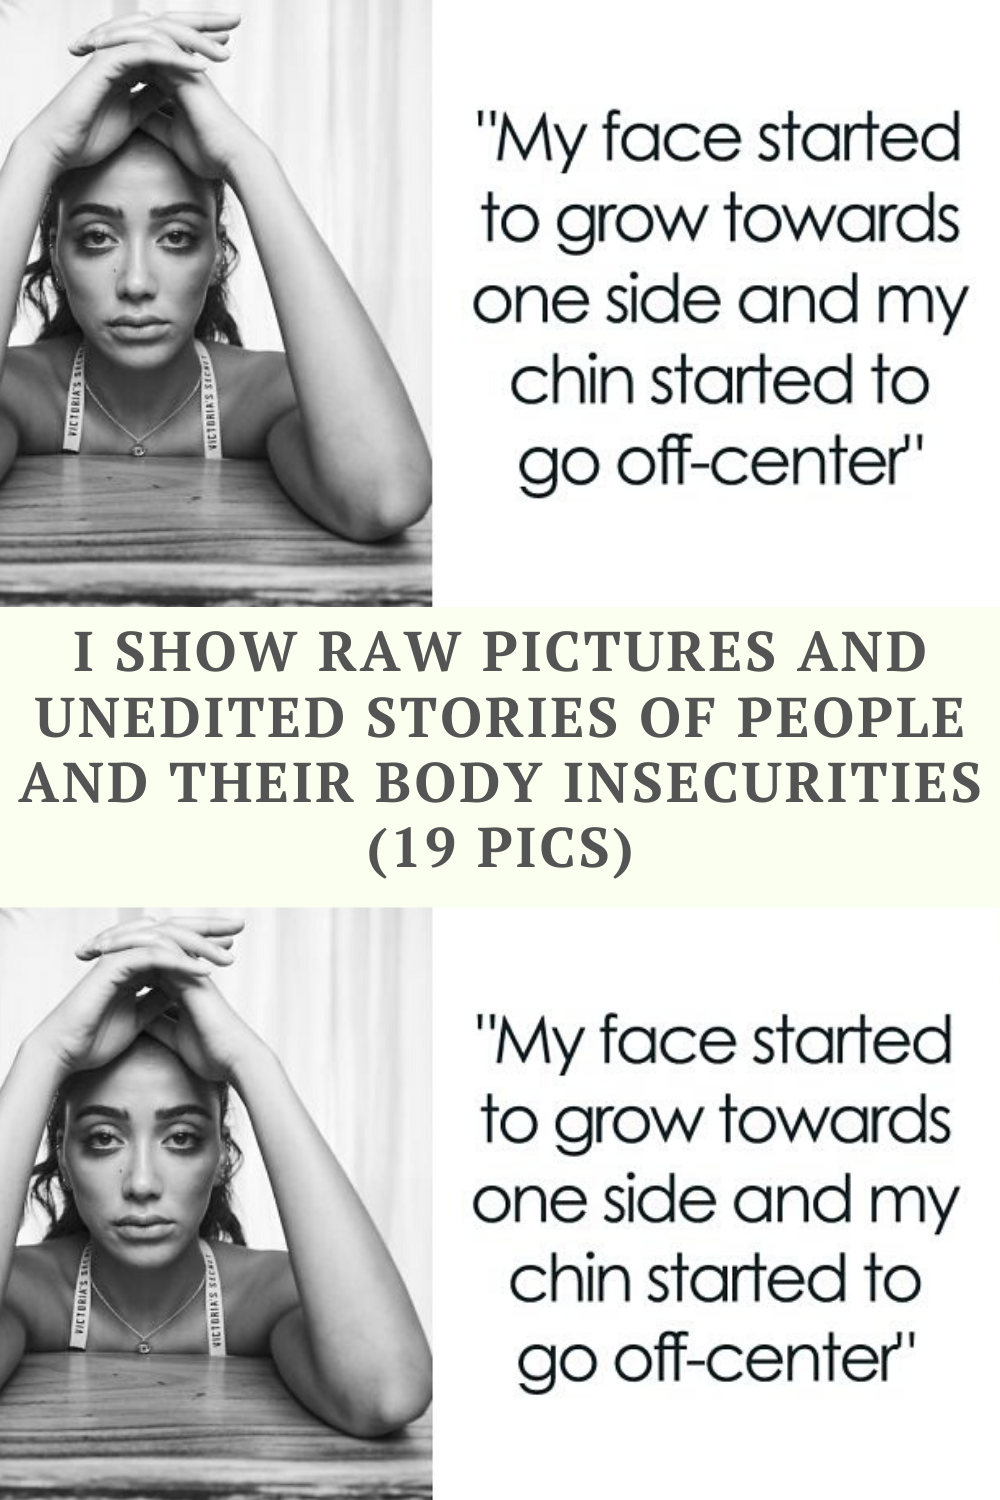 Unedited photos of people